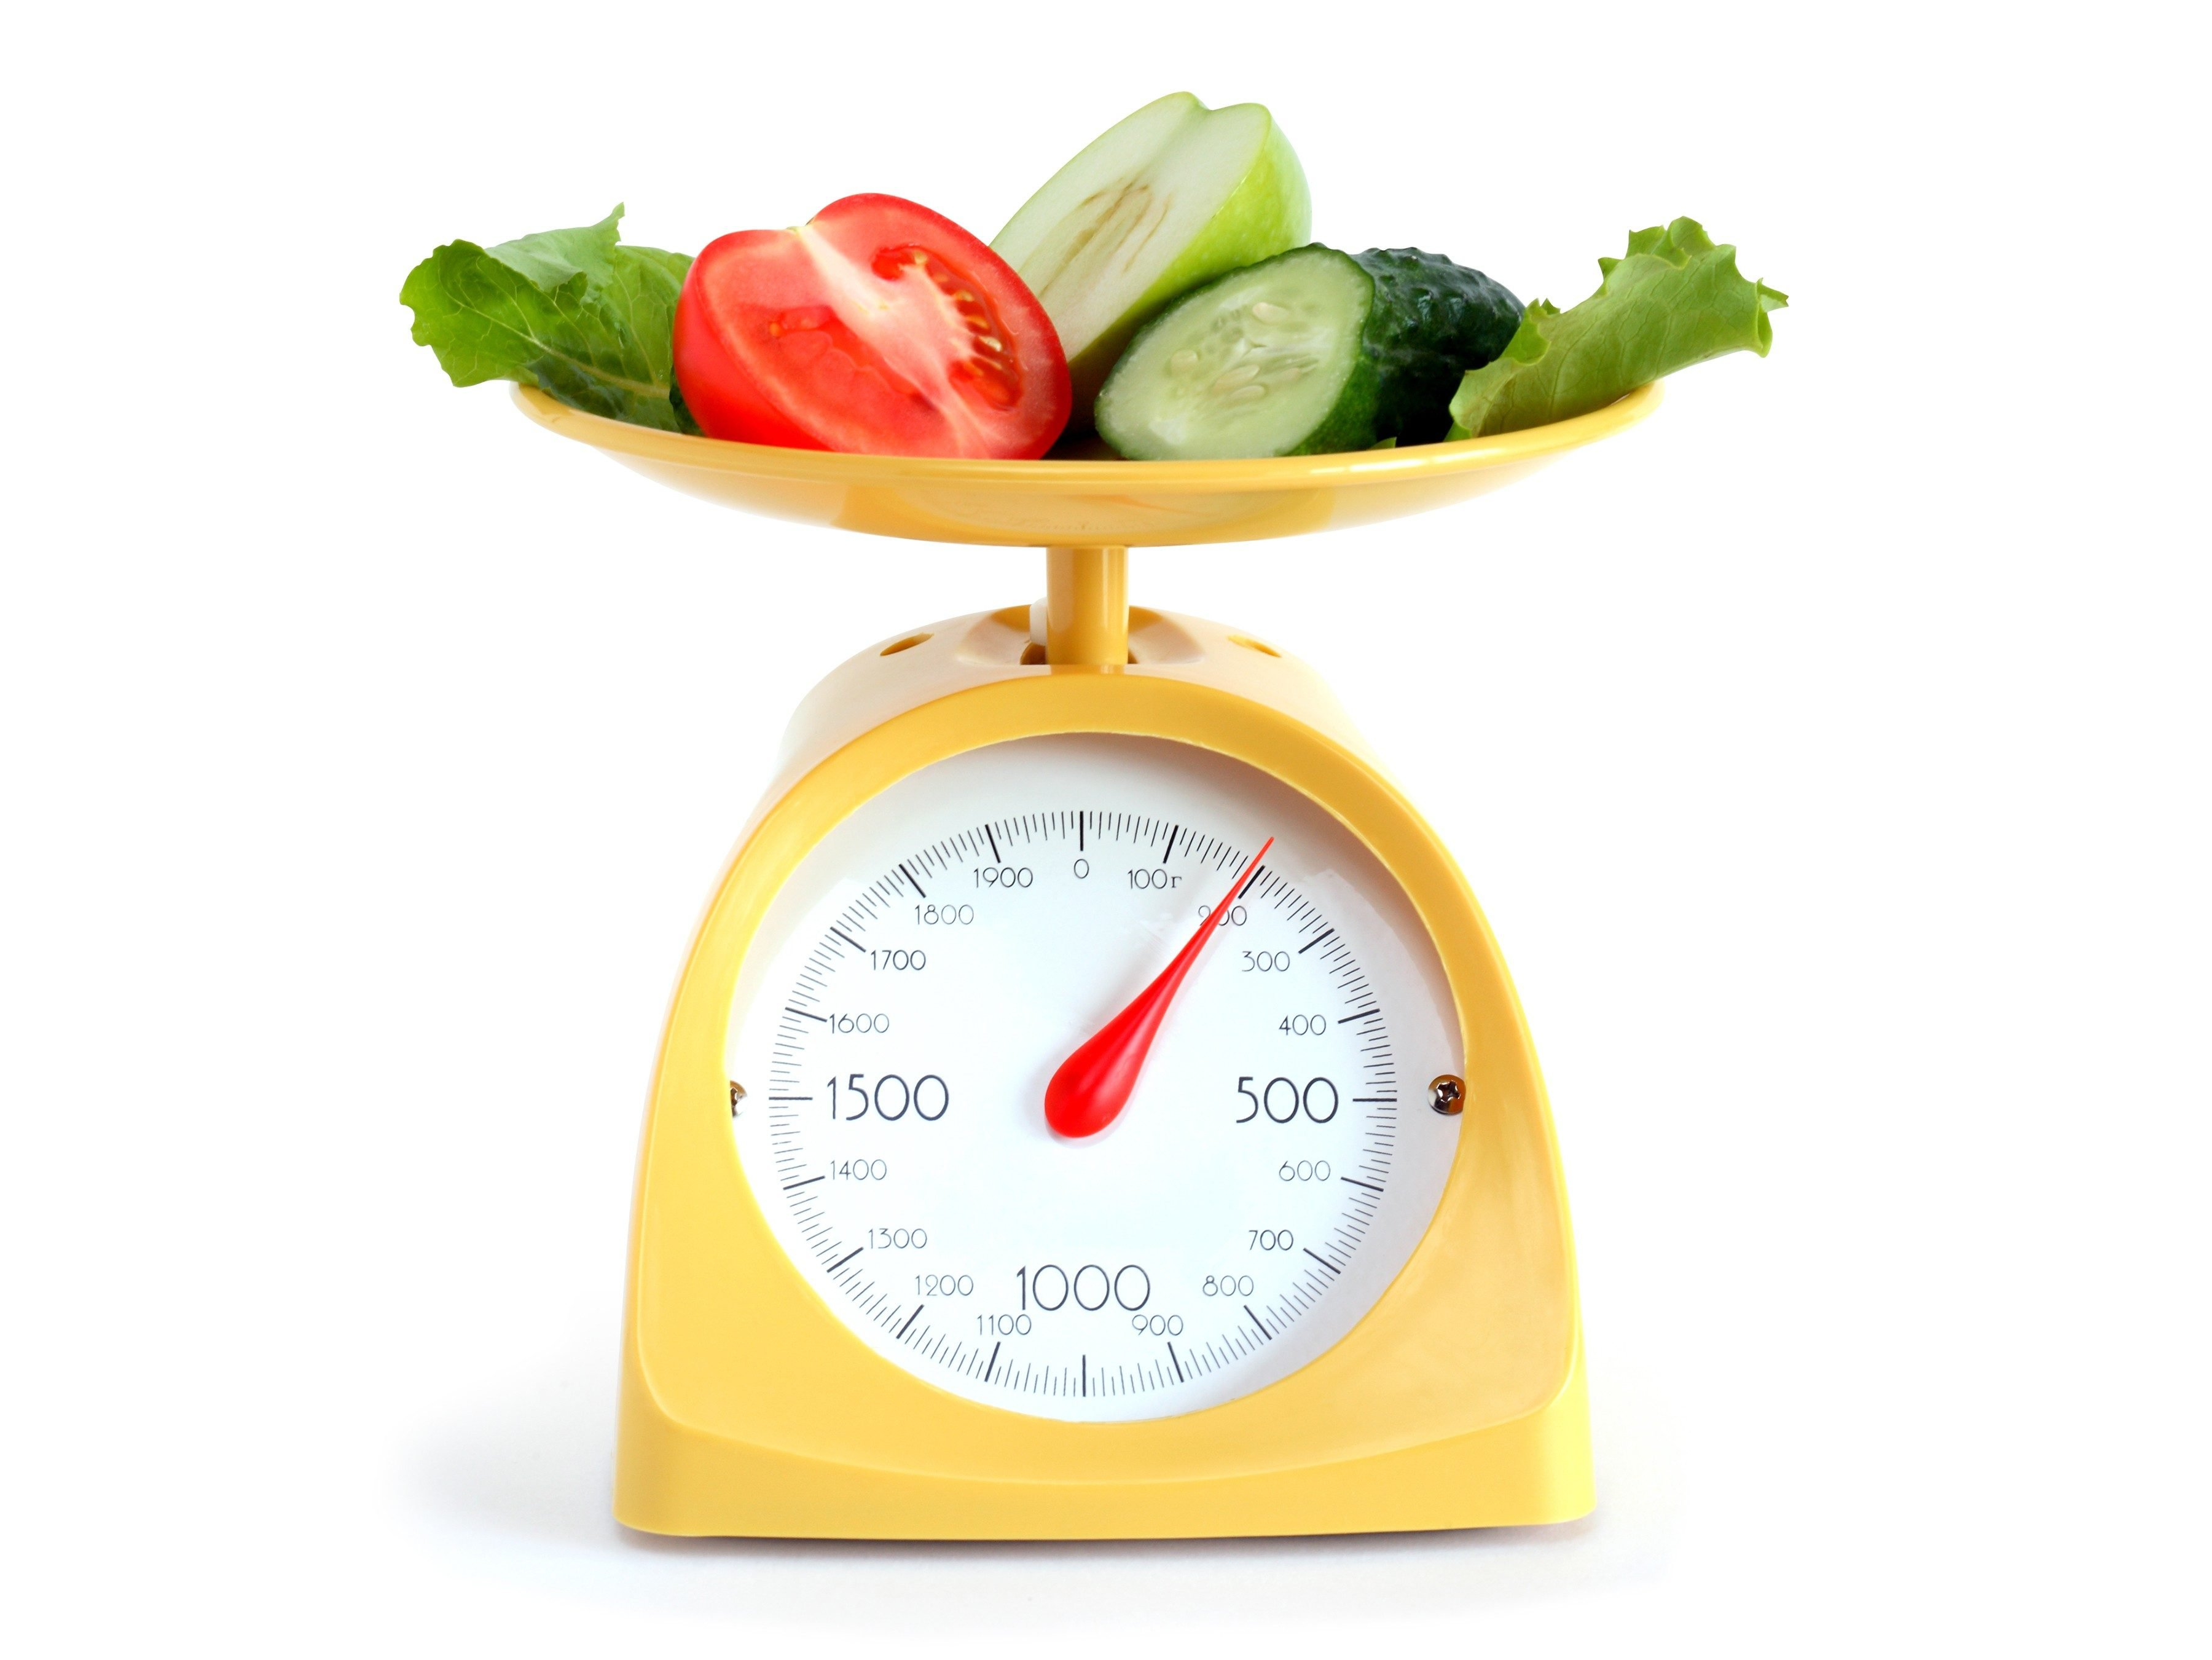 3. Prevent memory loss by reducing your portion sizes